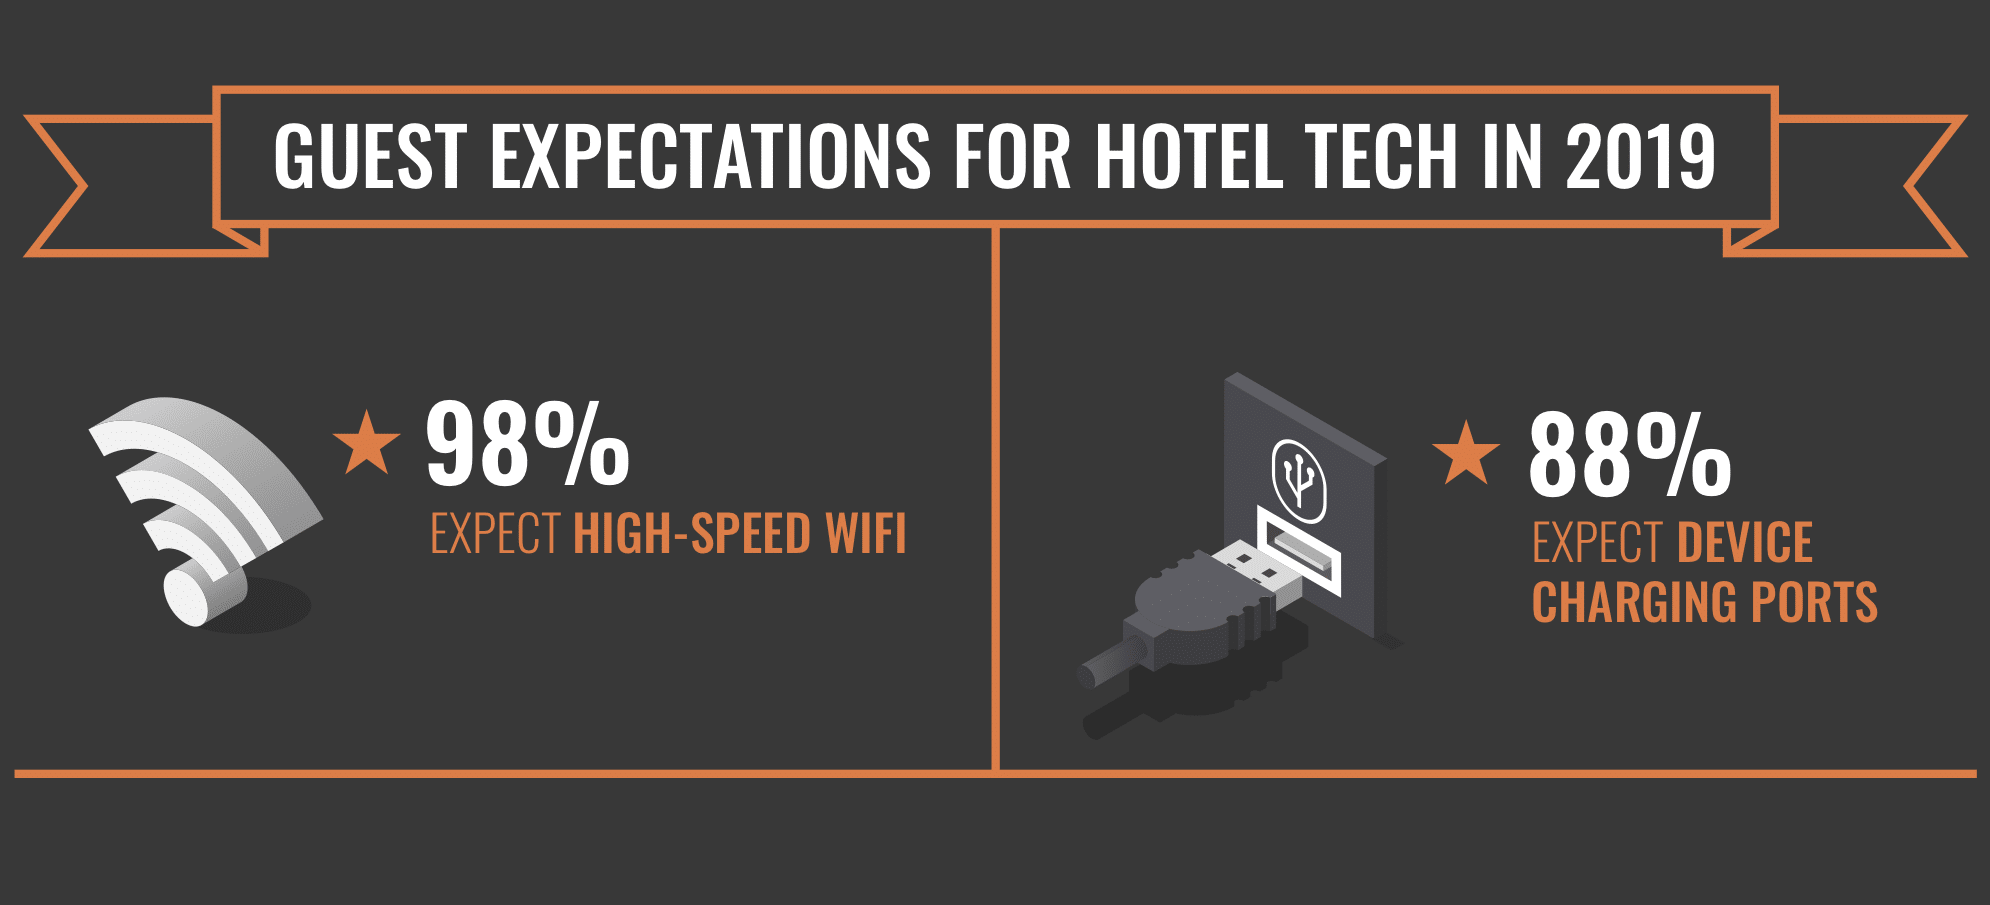 Expectativas do hóspede sobre o wi-fi do hotel